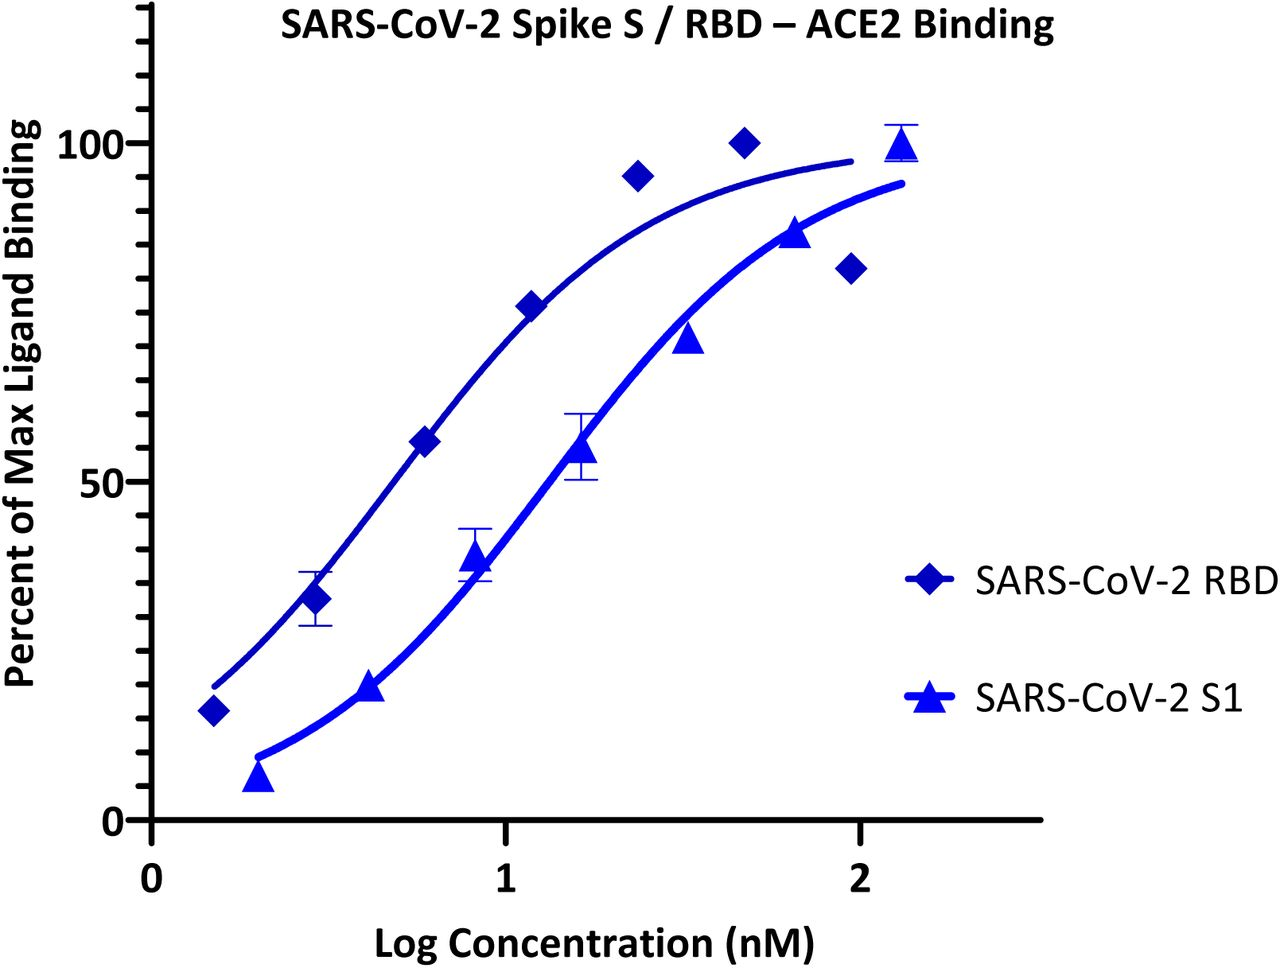 Concentration-response curves for binding of SARS-CoV-2 spike protein S1 and RBD to ACE2 in our ELISA-based assay format. Data obtained with Fc-conjugated ACE2 coated on the plate and His-tagged S1 or RBD added in increasing amounts as shown with the amount bound detected using an anti-His–HRP conjugate (mean ± SD for two experiments in duplicates).